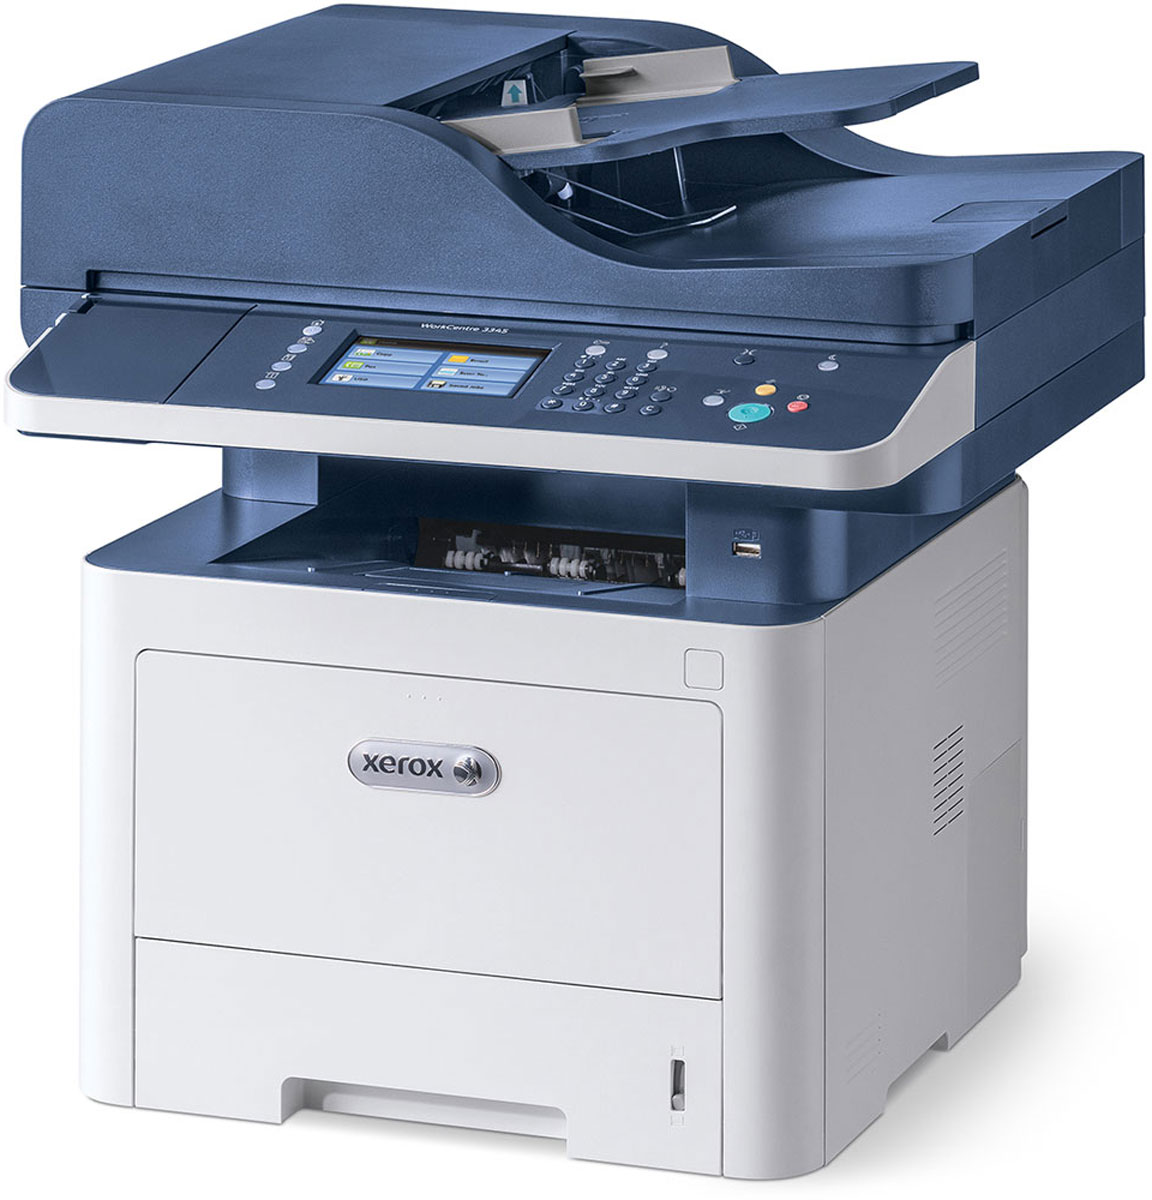 Xerox WorkCentre 3345DNI МФУ